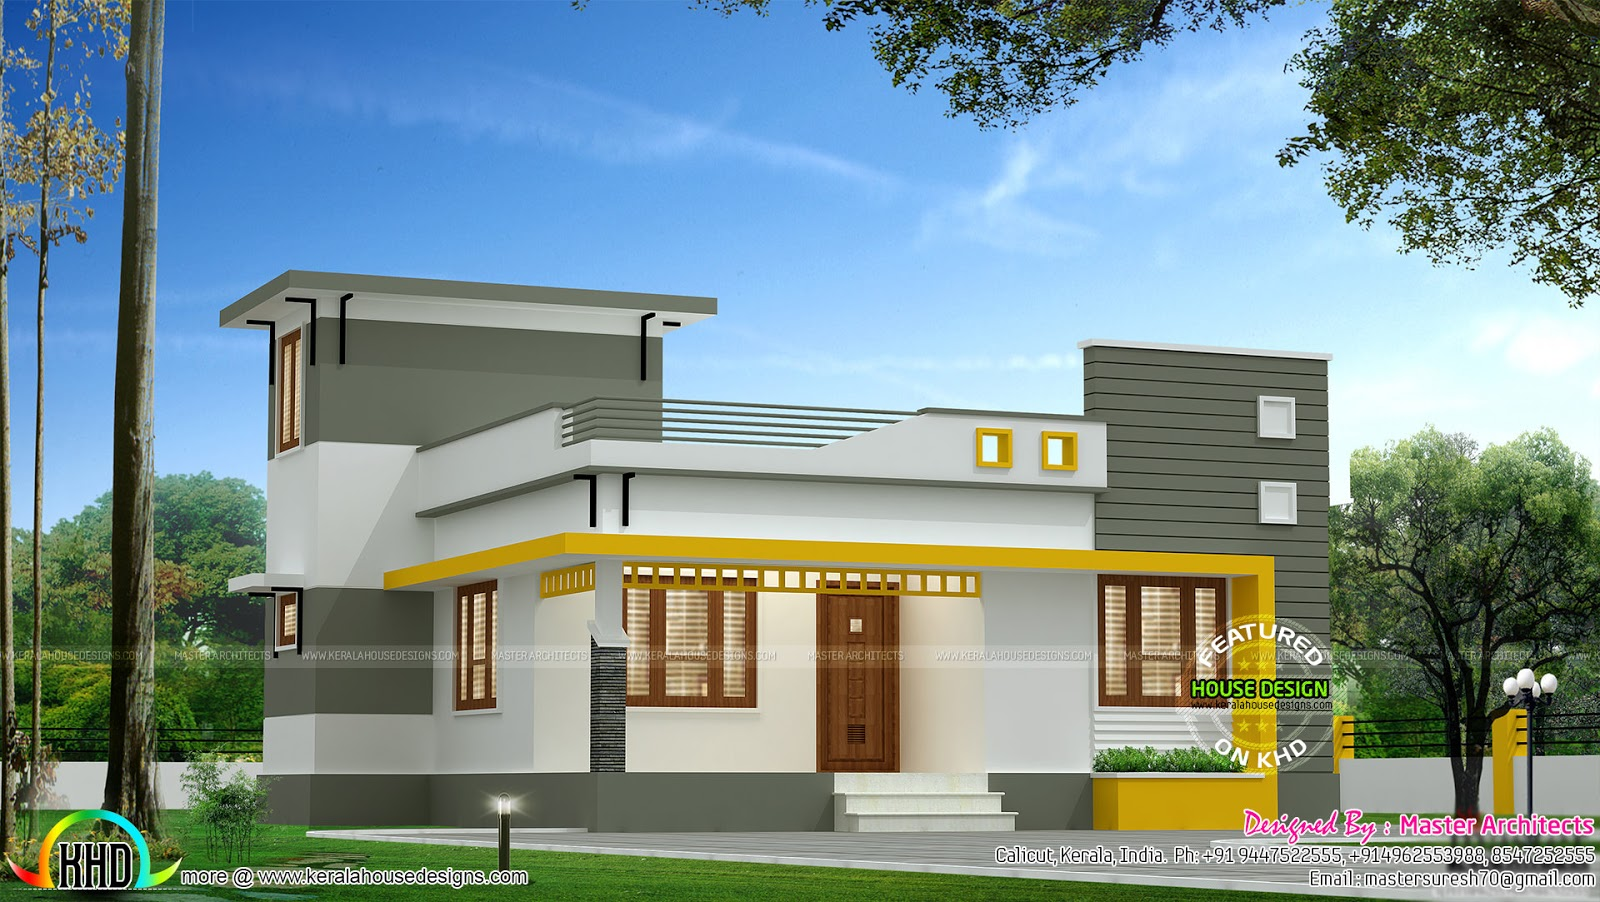 3 bedroom single floor modern architecture home kerala for Modern house design single floor